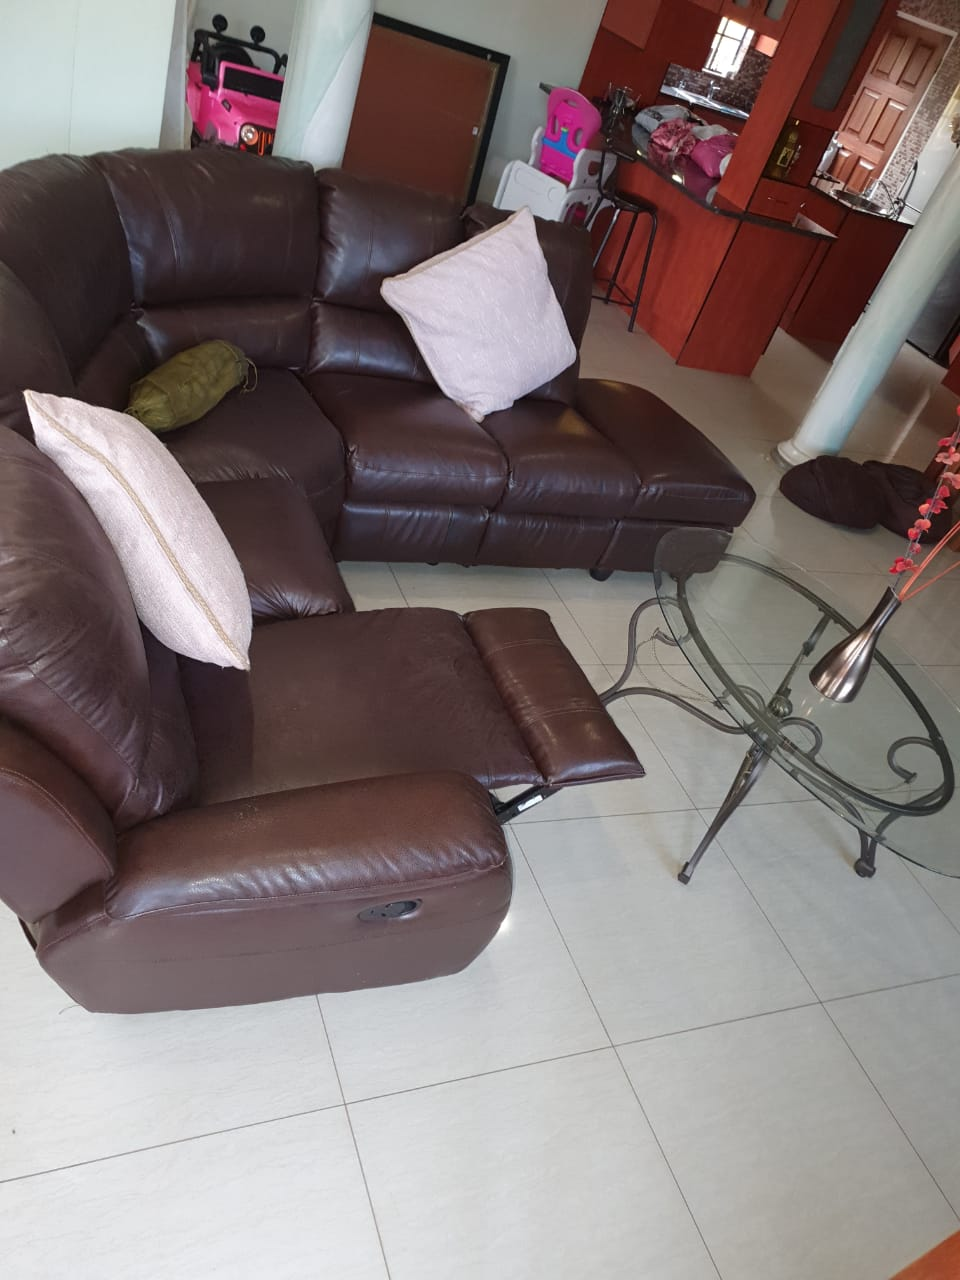 Leather Upper 6 Seater, storage ottoman and glass coffee table for sale